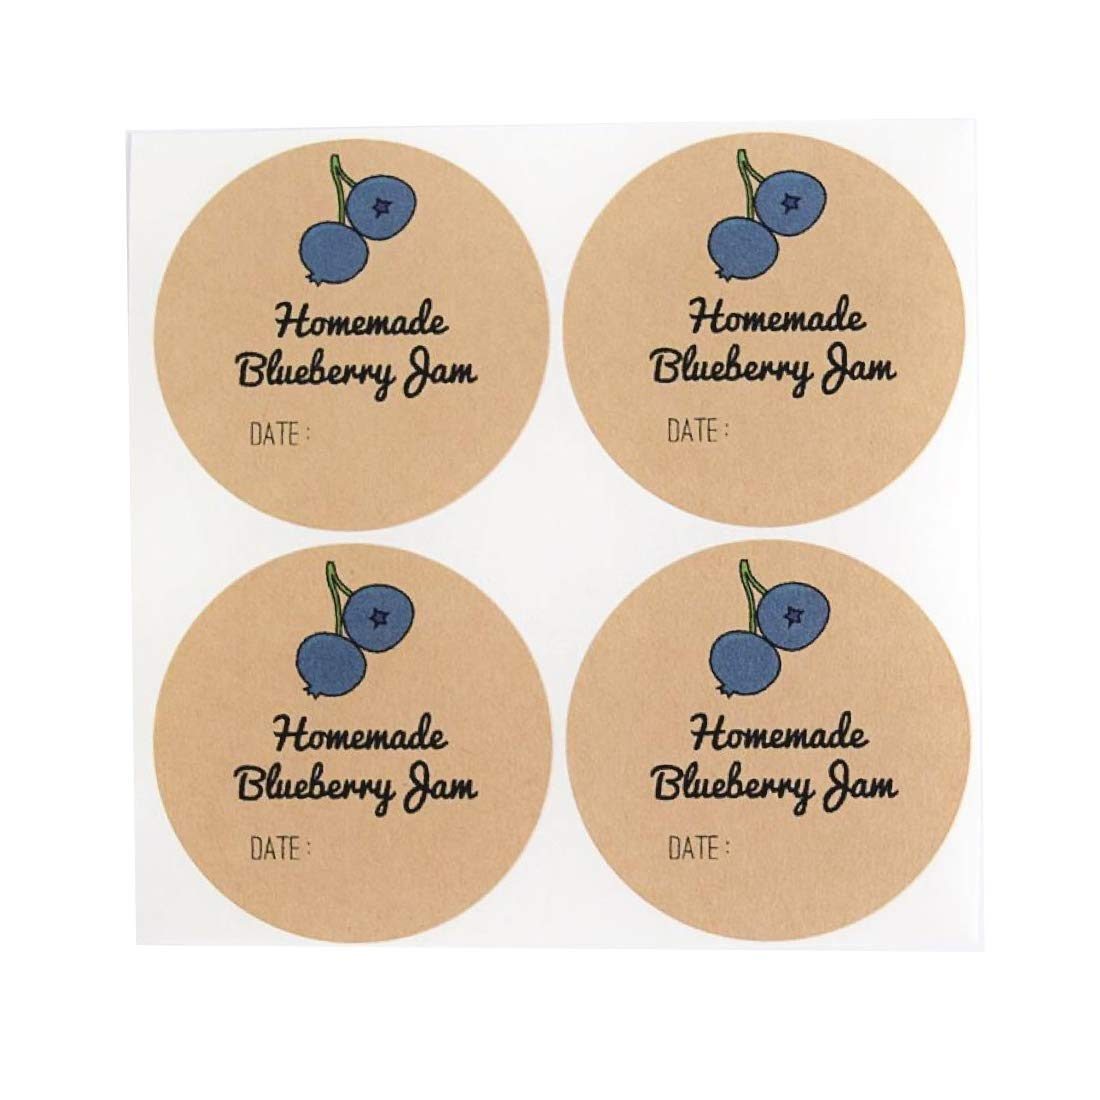 """Homemade Blueberry Jam Labels for Mason Jars by Once Upon Supplies, Blueberry Jam Canning Labels, Canning Supplies, 2"""" Size for Regular Mouth Jars, 40 Pcs"""